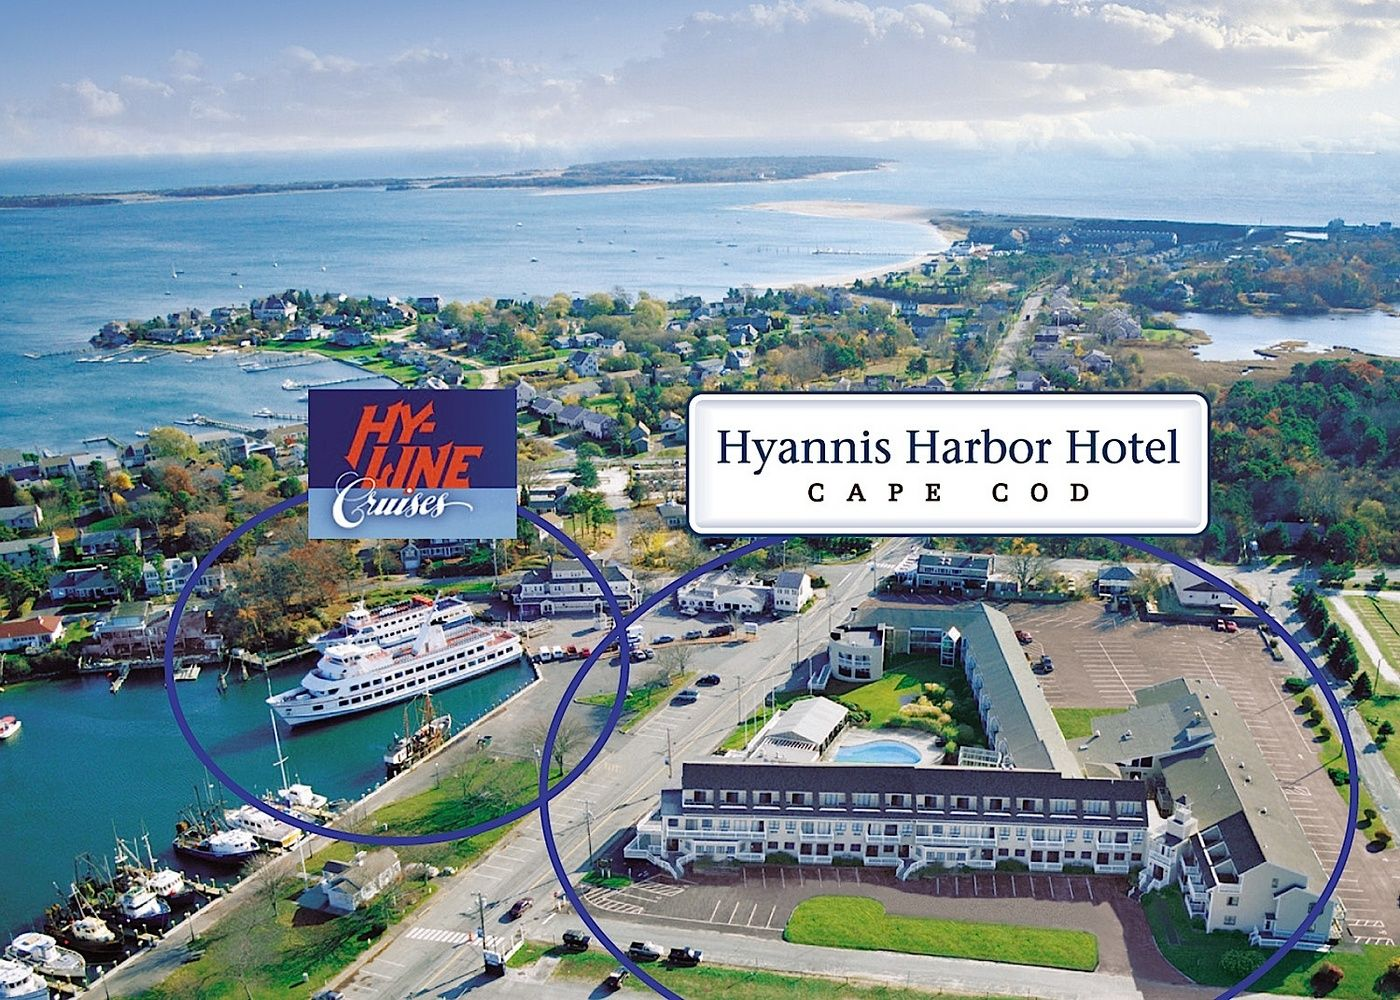 Cape Cod Hotels Hyannis Harbor Hotel Ma